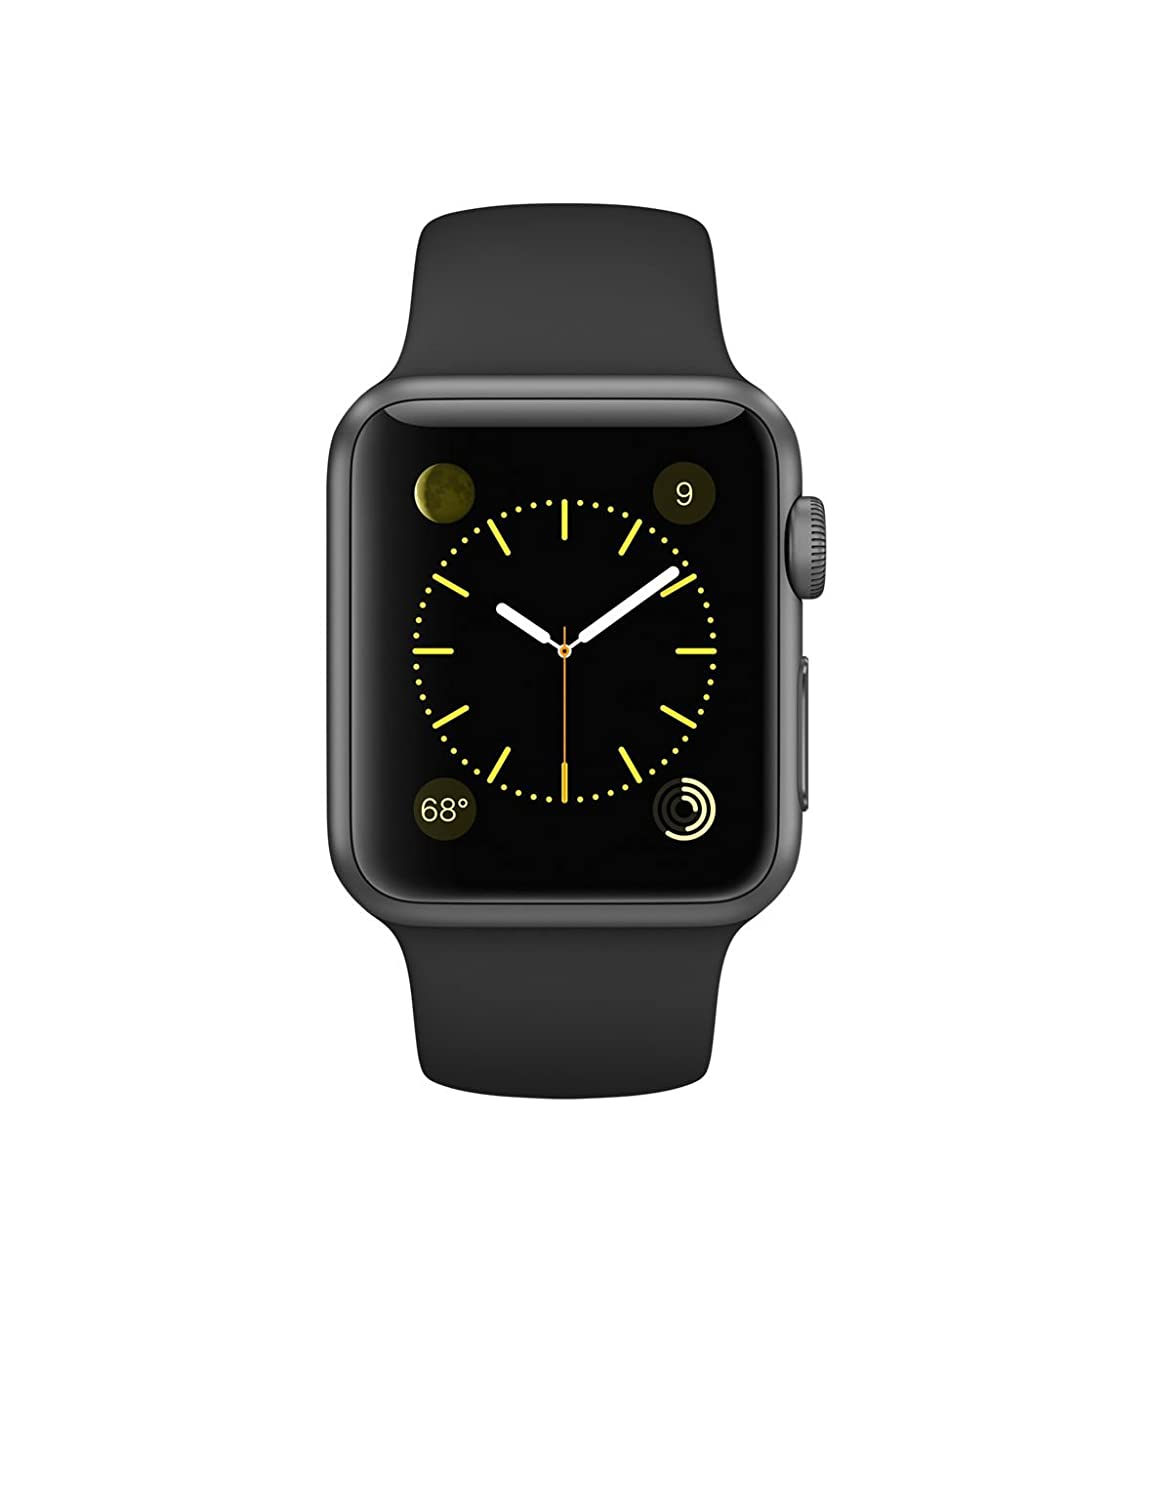 91d5913166f Amazon.com  Apple Watch Series 1 38mm Space Gray Aluminum with Black Sport  Band  Cell Phones   Accessories